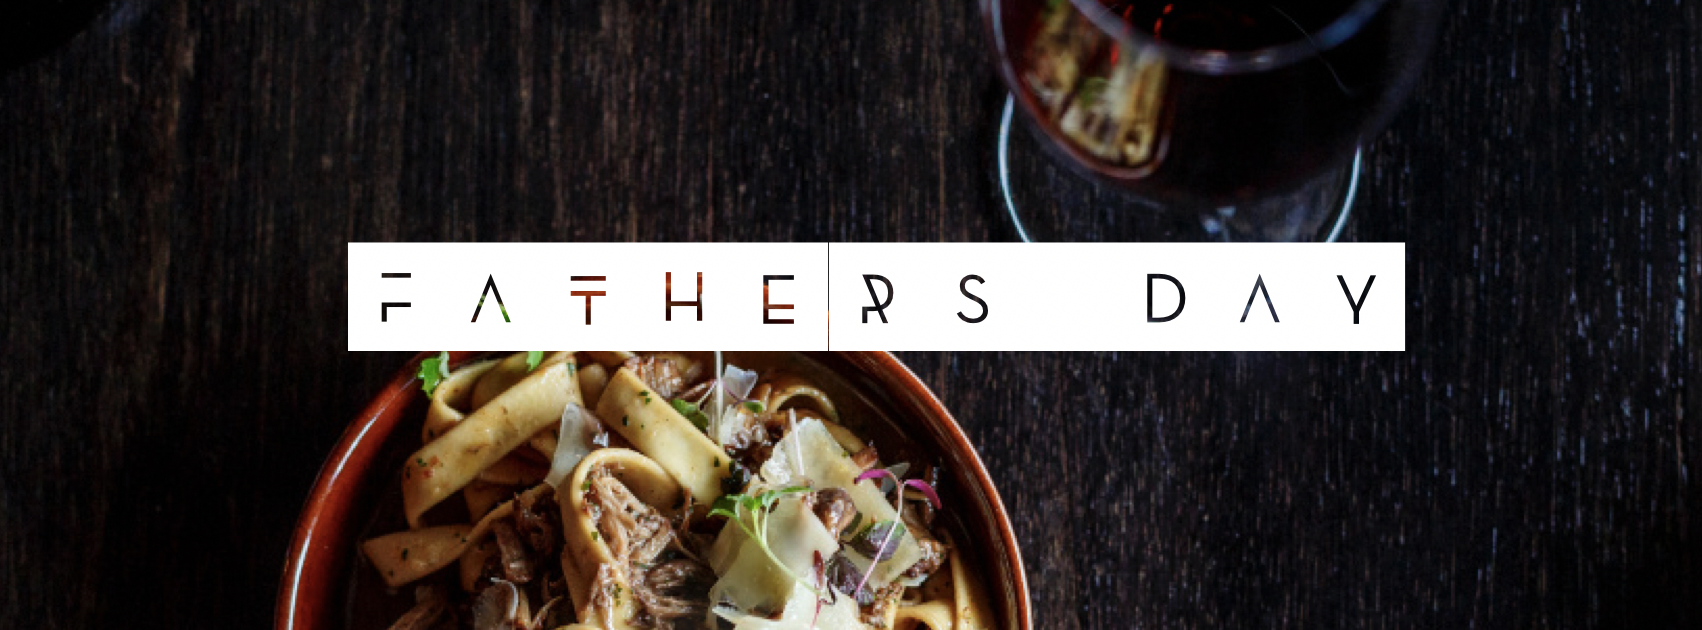 Father's Day Event Header Image